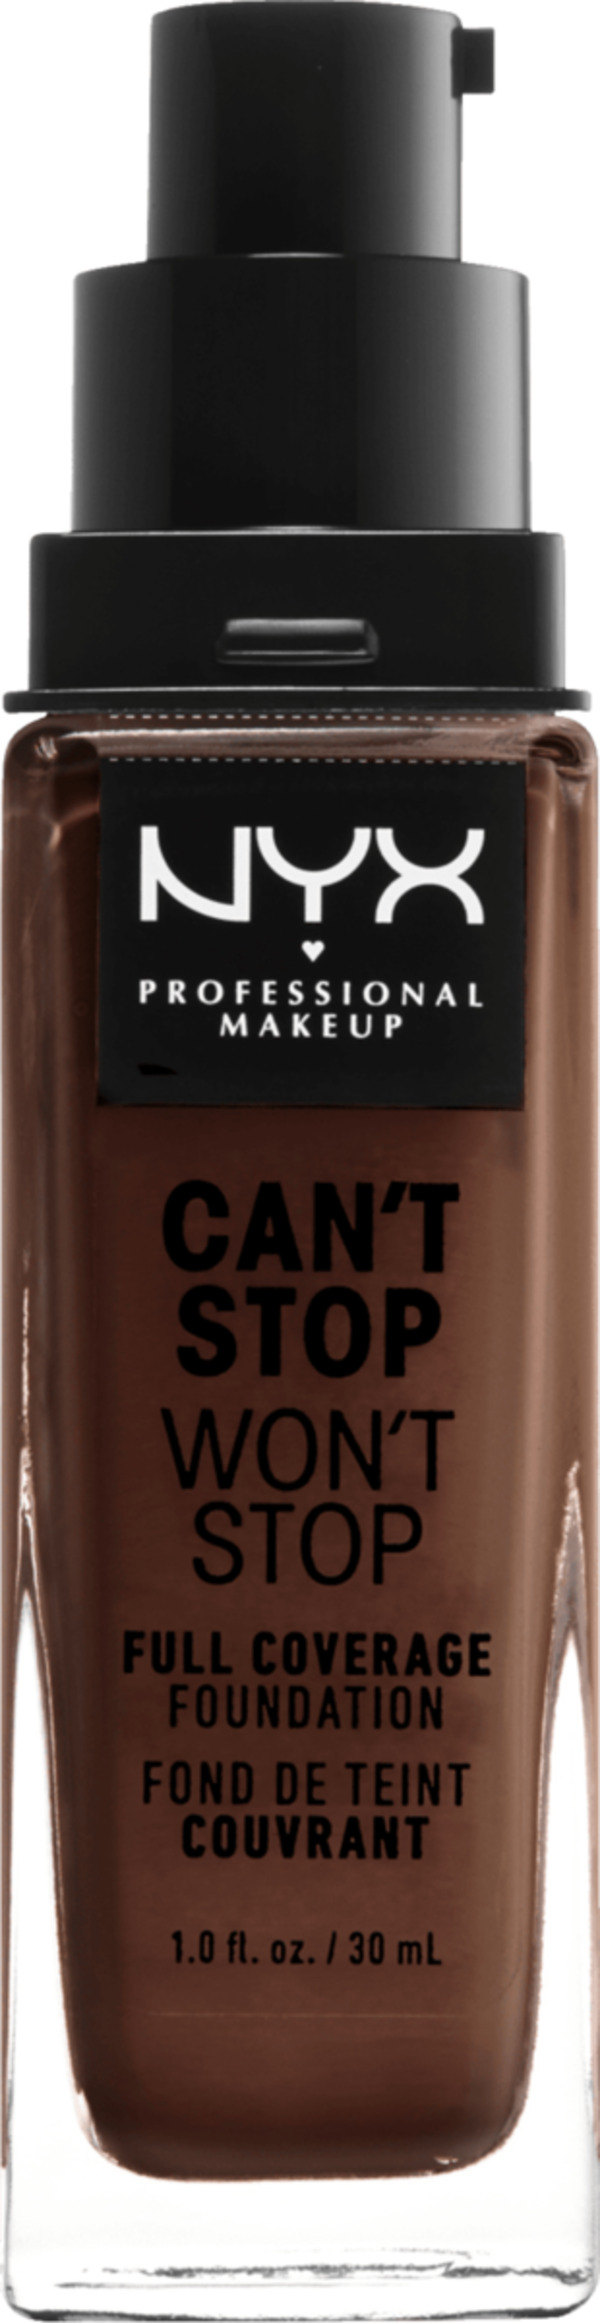 NYX PROFESSIONAL MAKEUP Make-up Can't Stop Won't Stop 24-Hour Foundation warm walnut 22.5